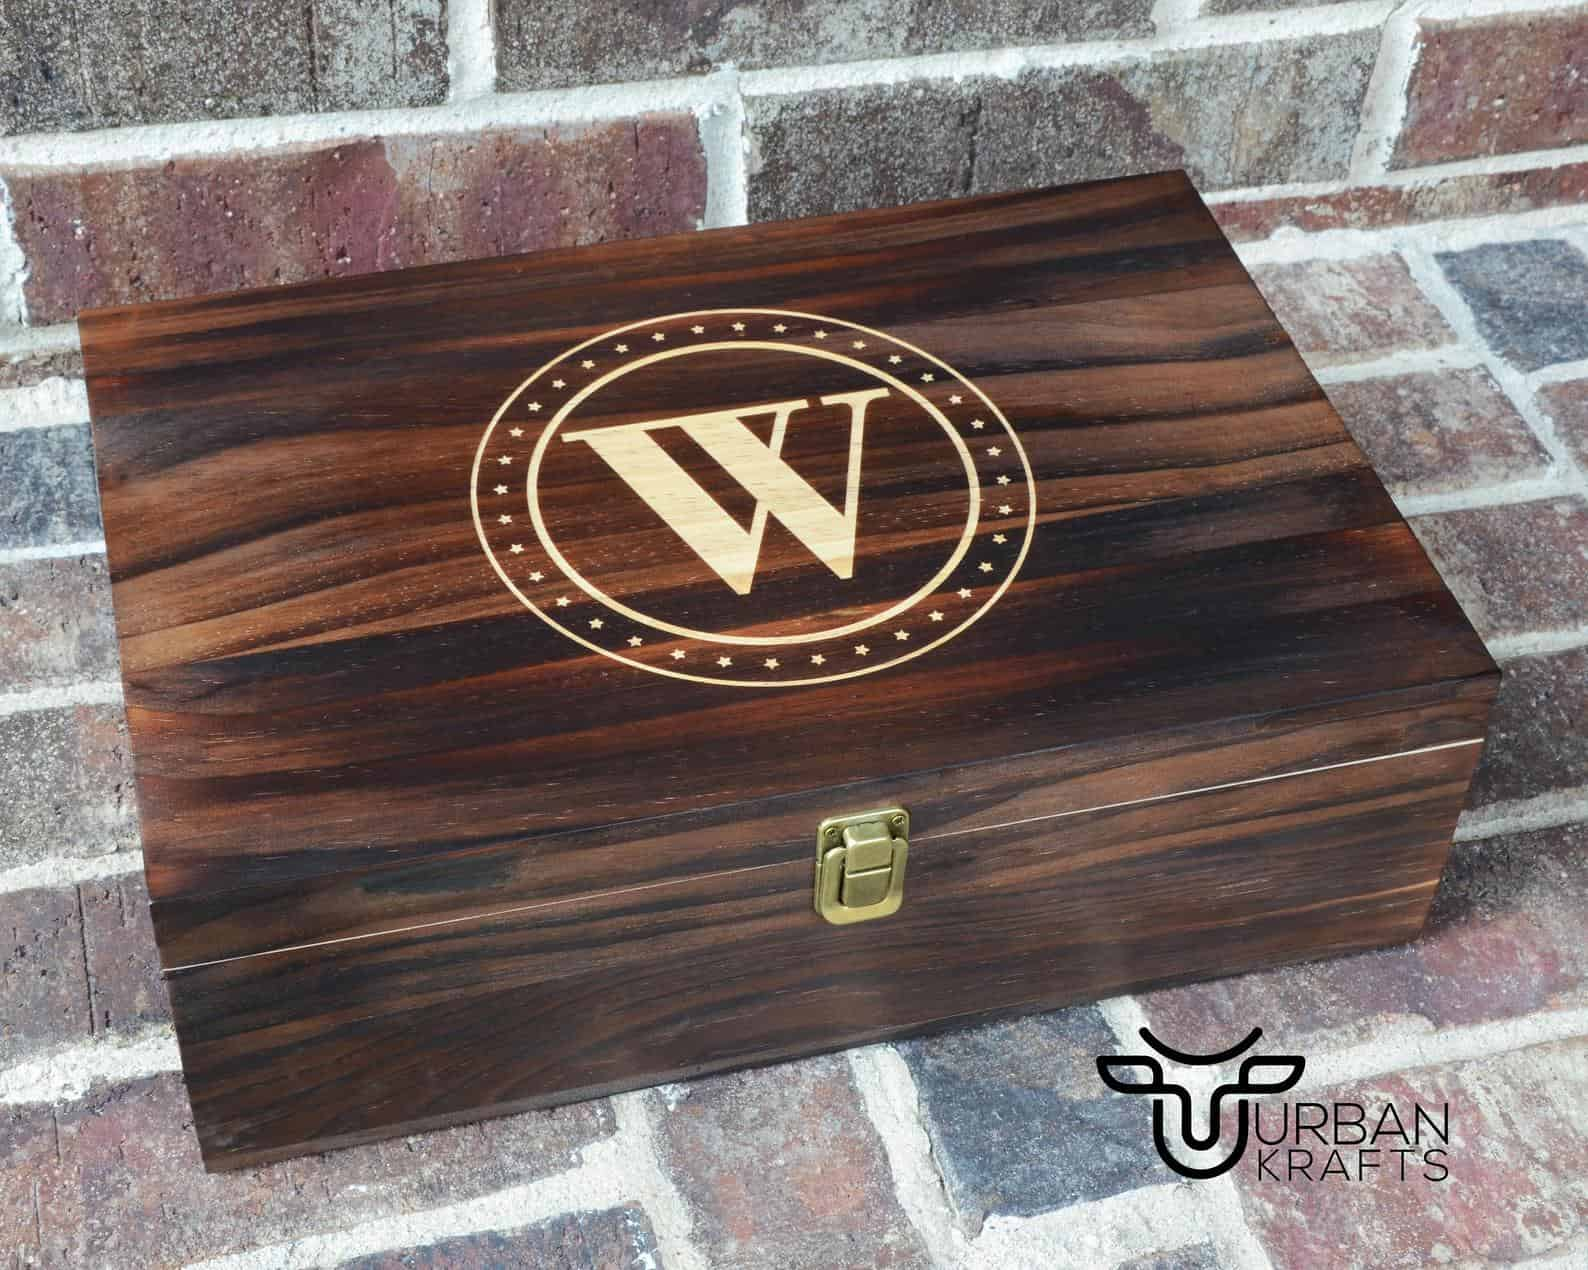 Woodworking box with monogram on the front